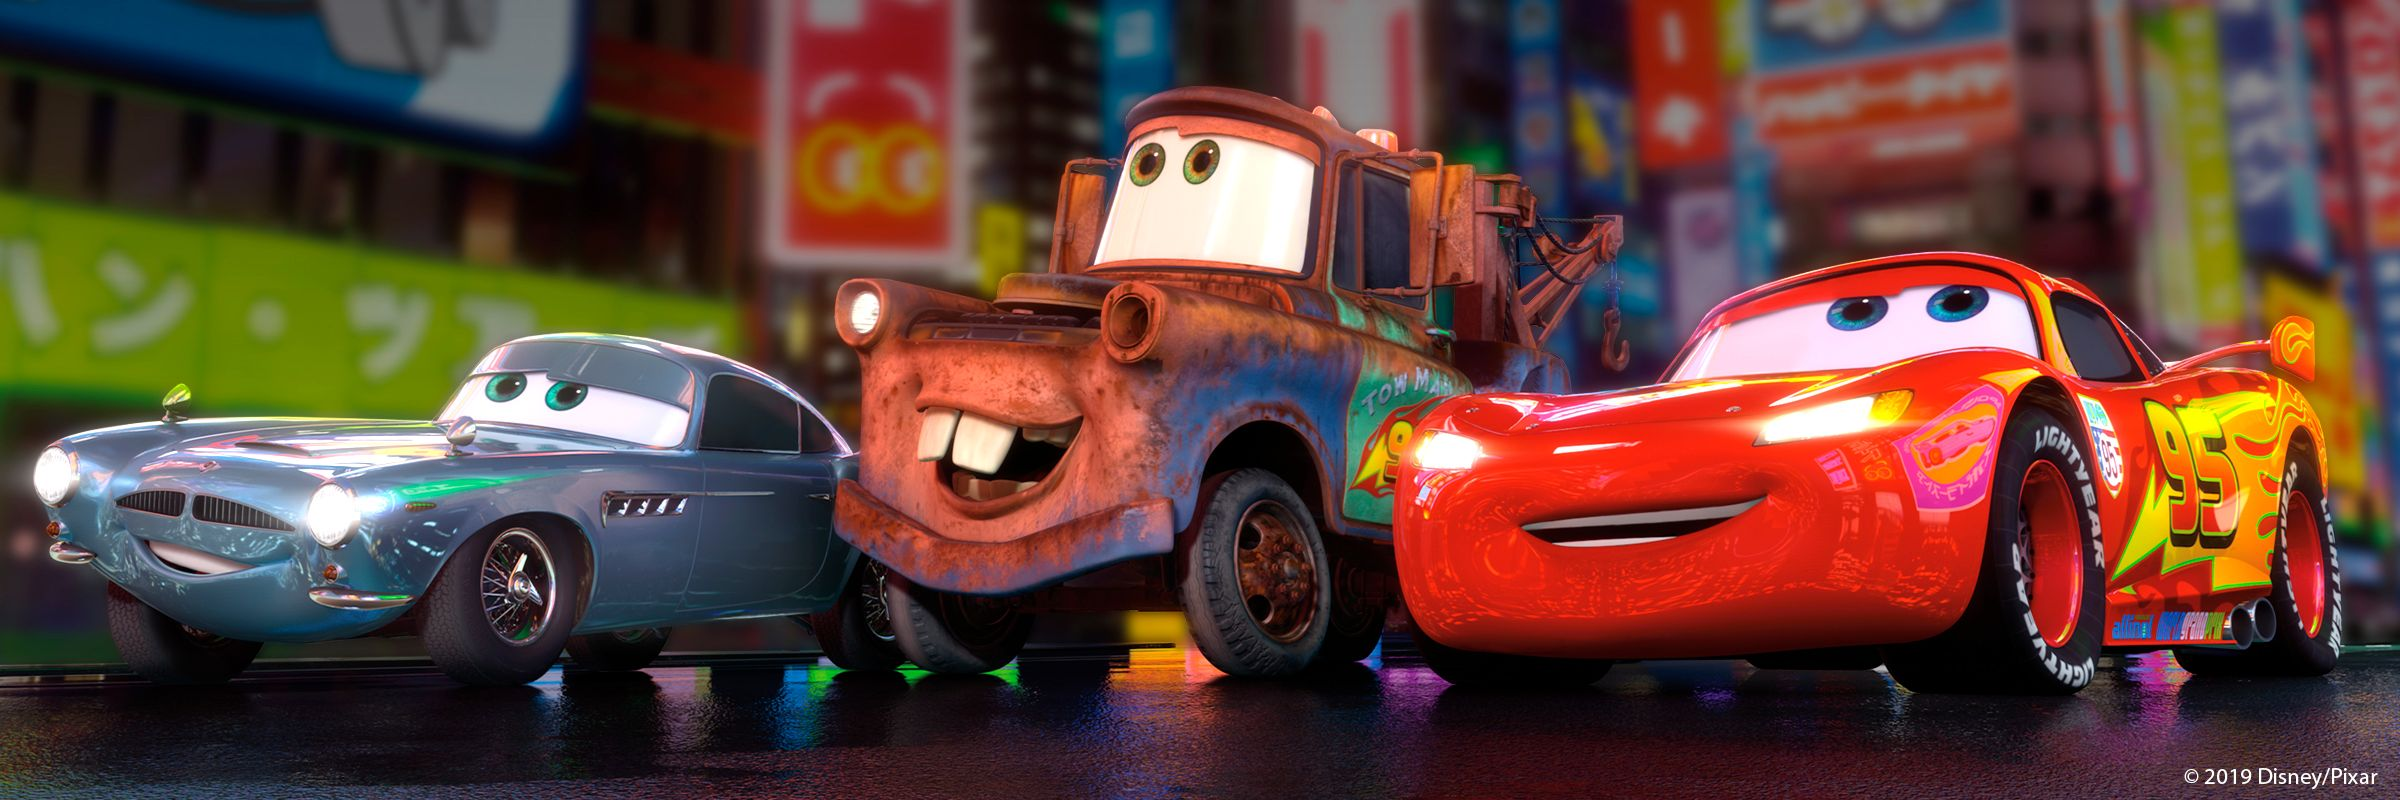 cars full movie online with english subtitles